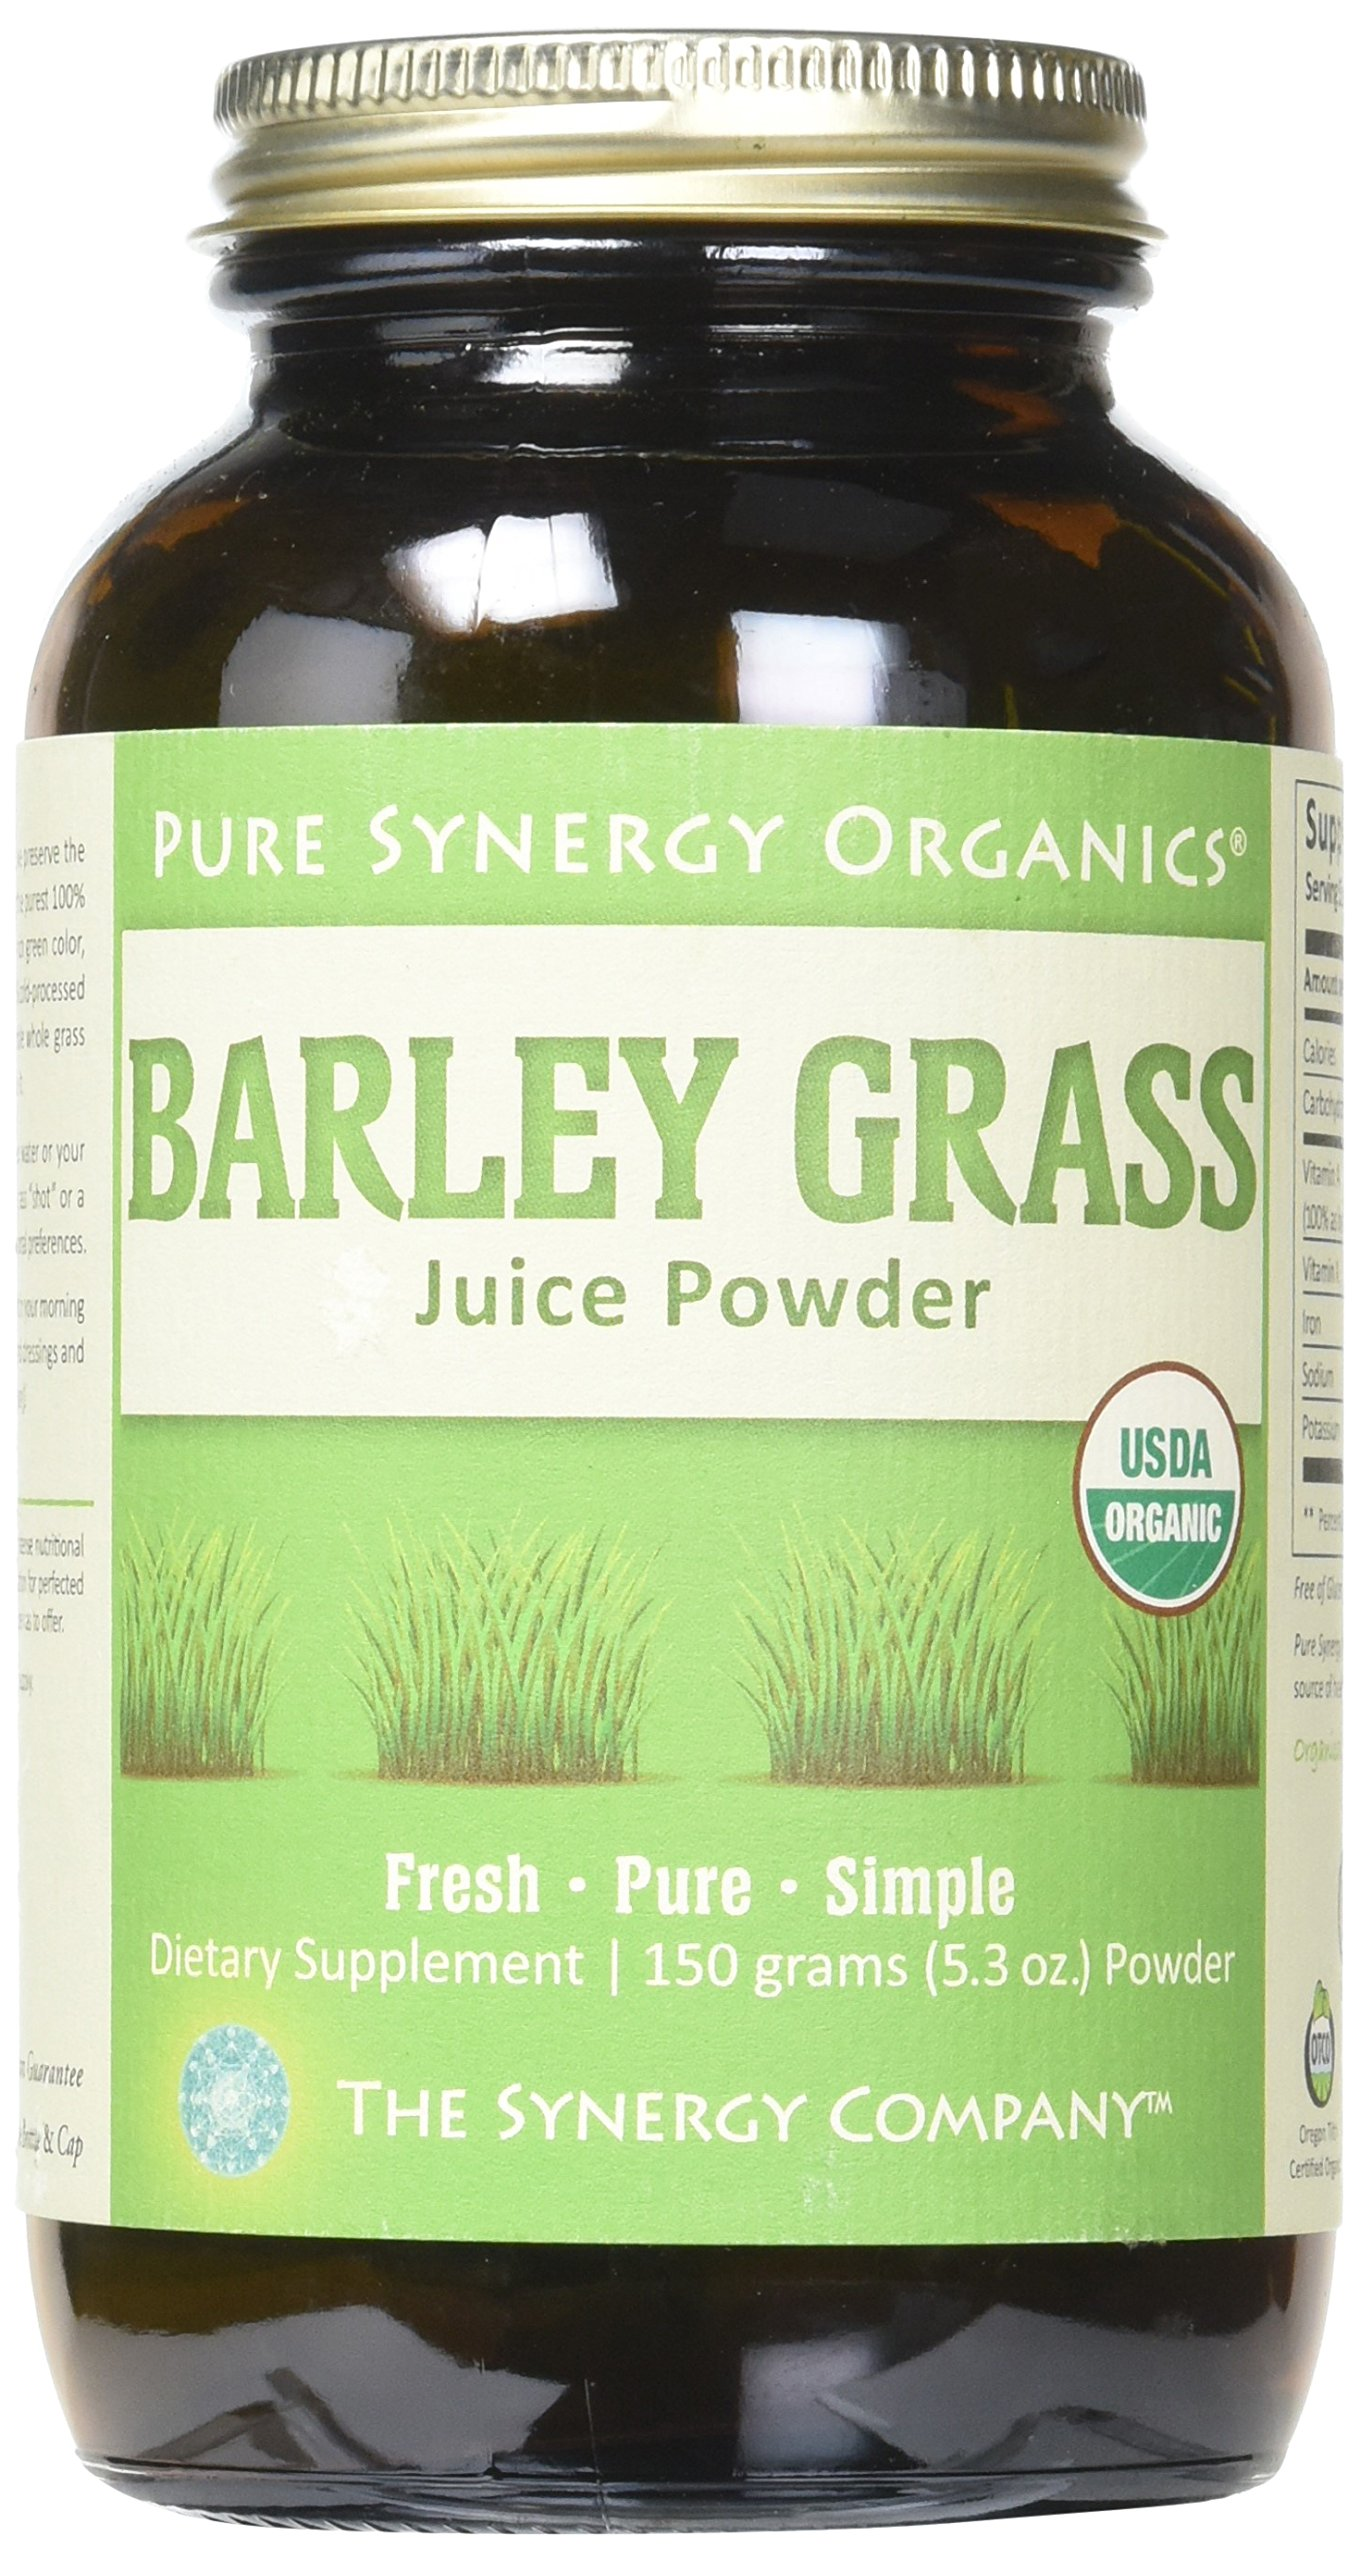 Pure Synergy USDA Organic Barley Grass Juice Powder (5.3 oz) USA Grown, Non-GMO